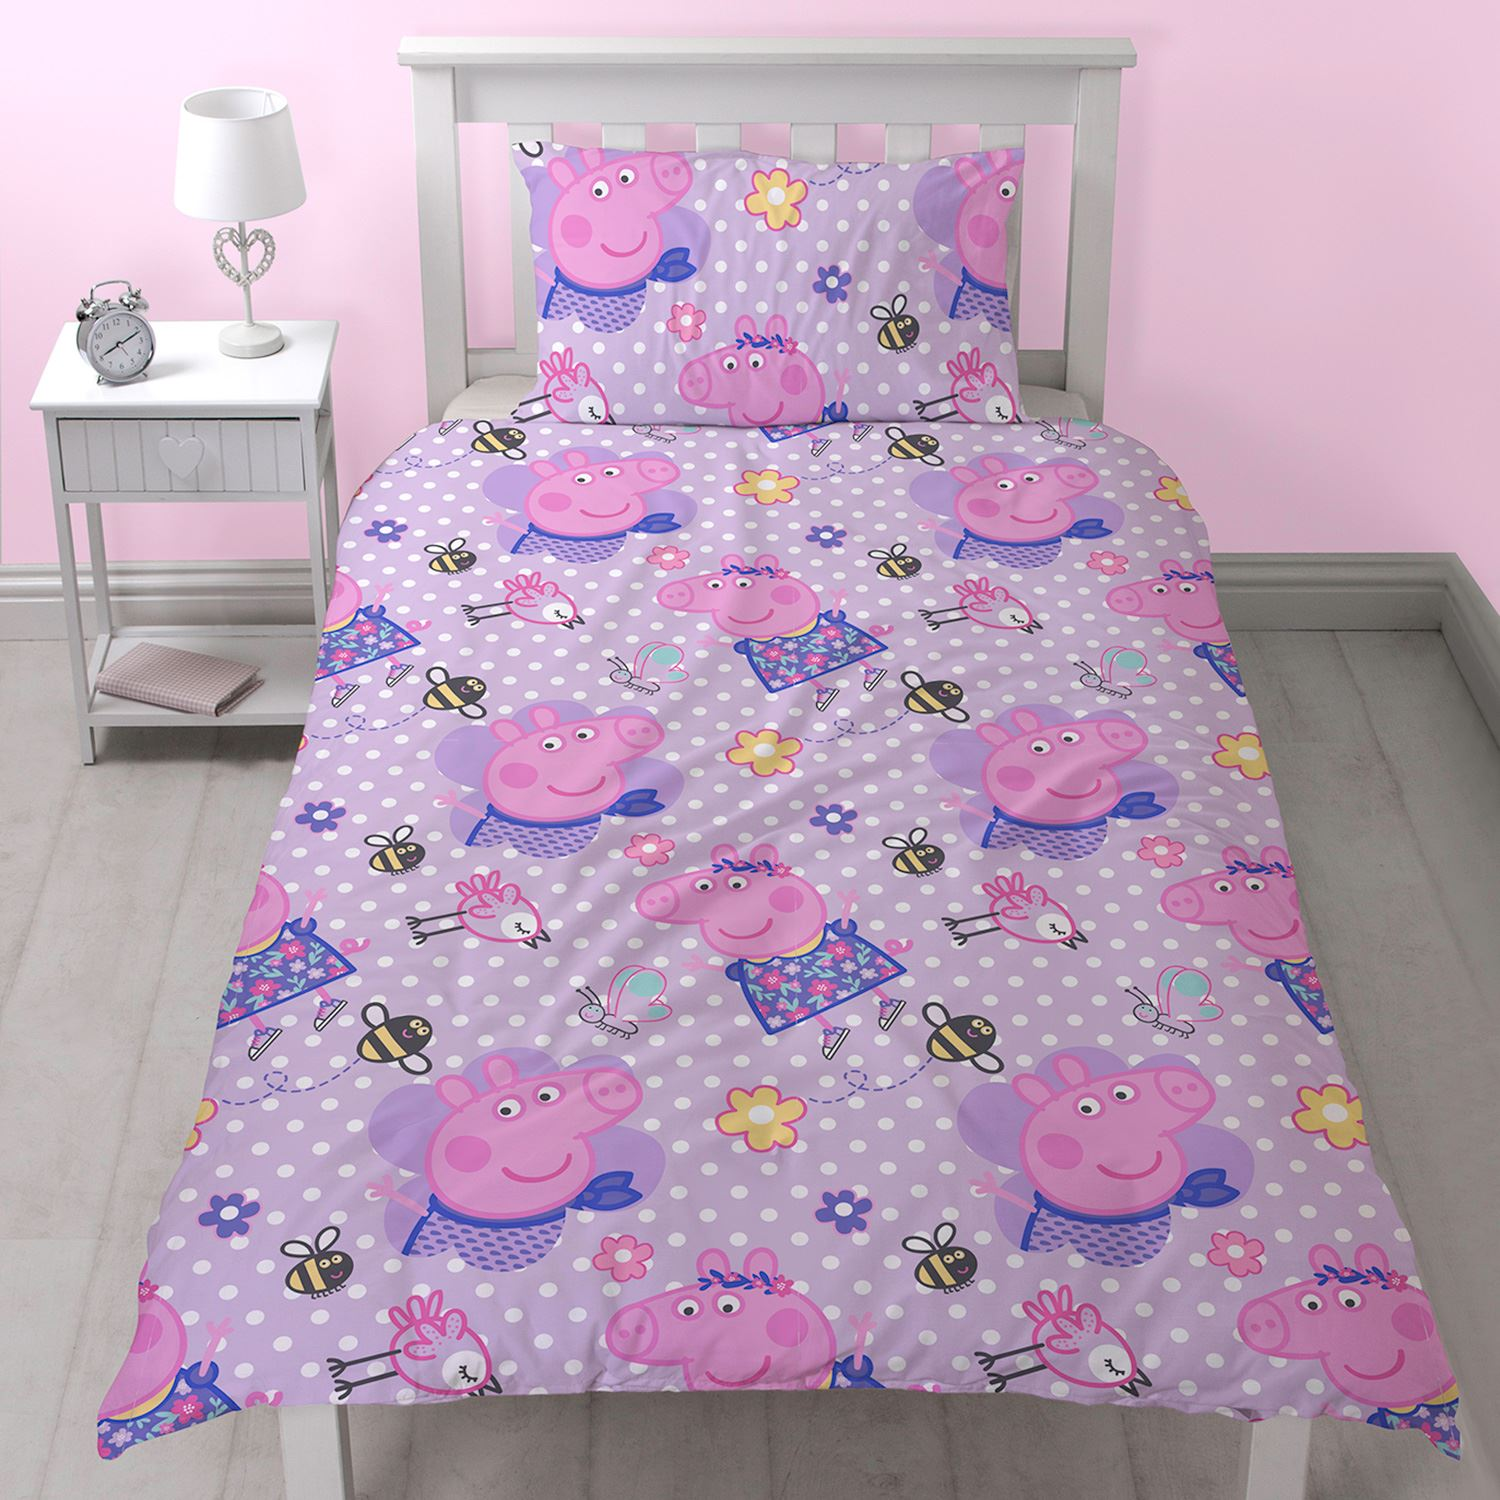 OFFICIAL PEPPA PIG DUVET COVERS SETS SINGLE DOUBLE FITTED ...